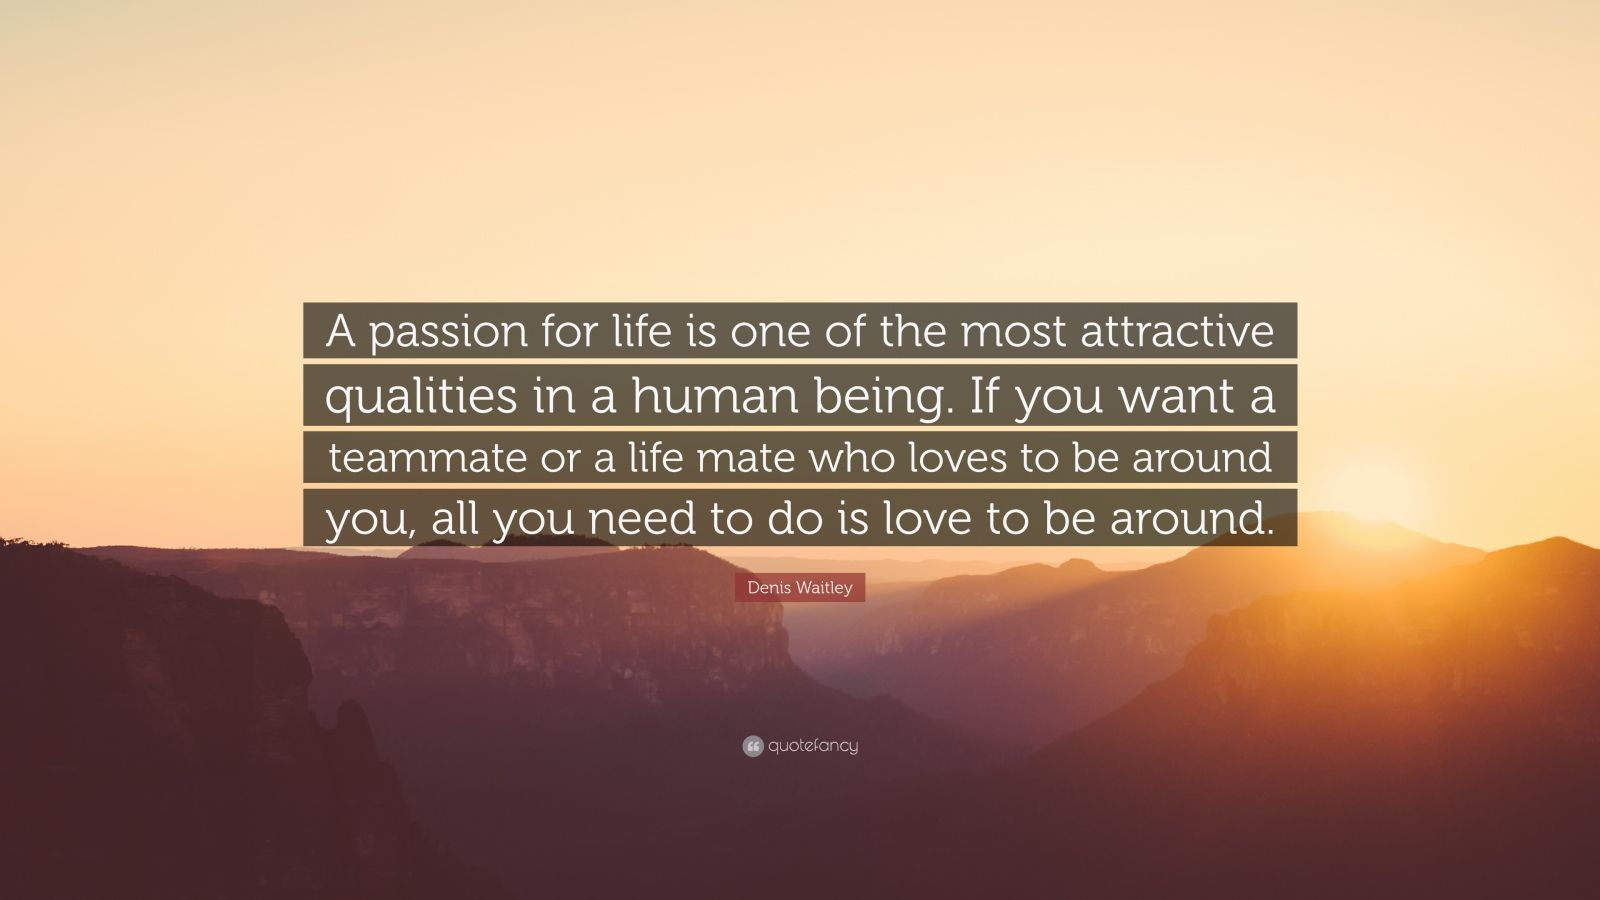 """Denis Waitley Quote: """"A passion for life is one of the most attractive qualities in a human being. If you want a teammate or a life mate who loves to be around you, all you need to do is love to be around."""""""